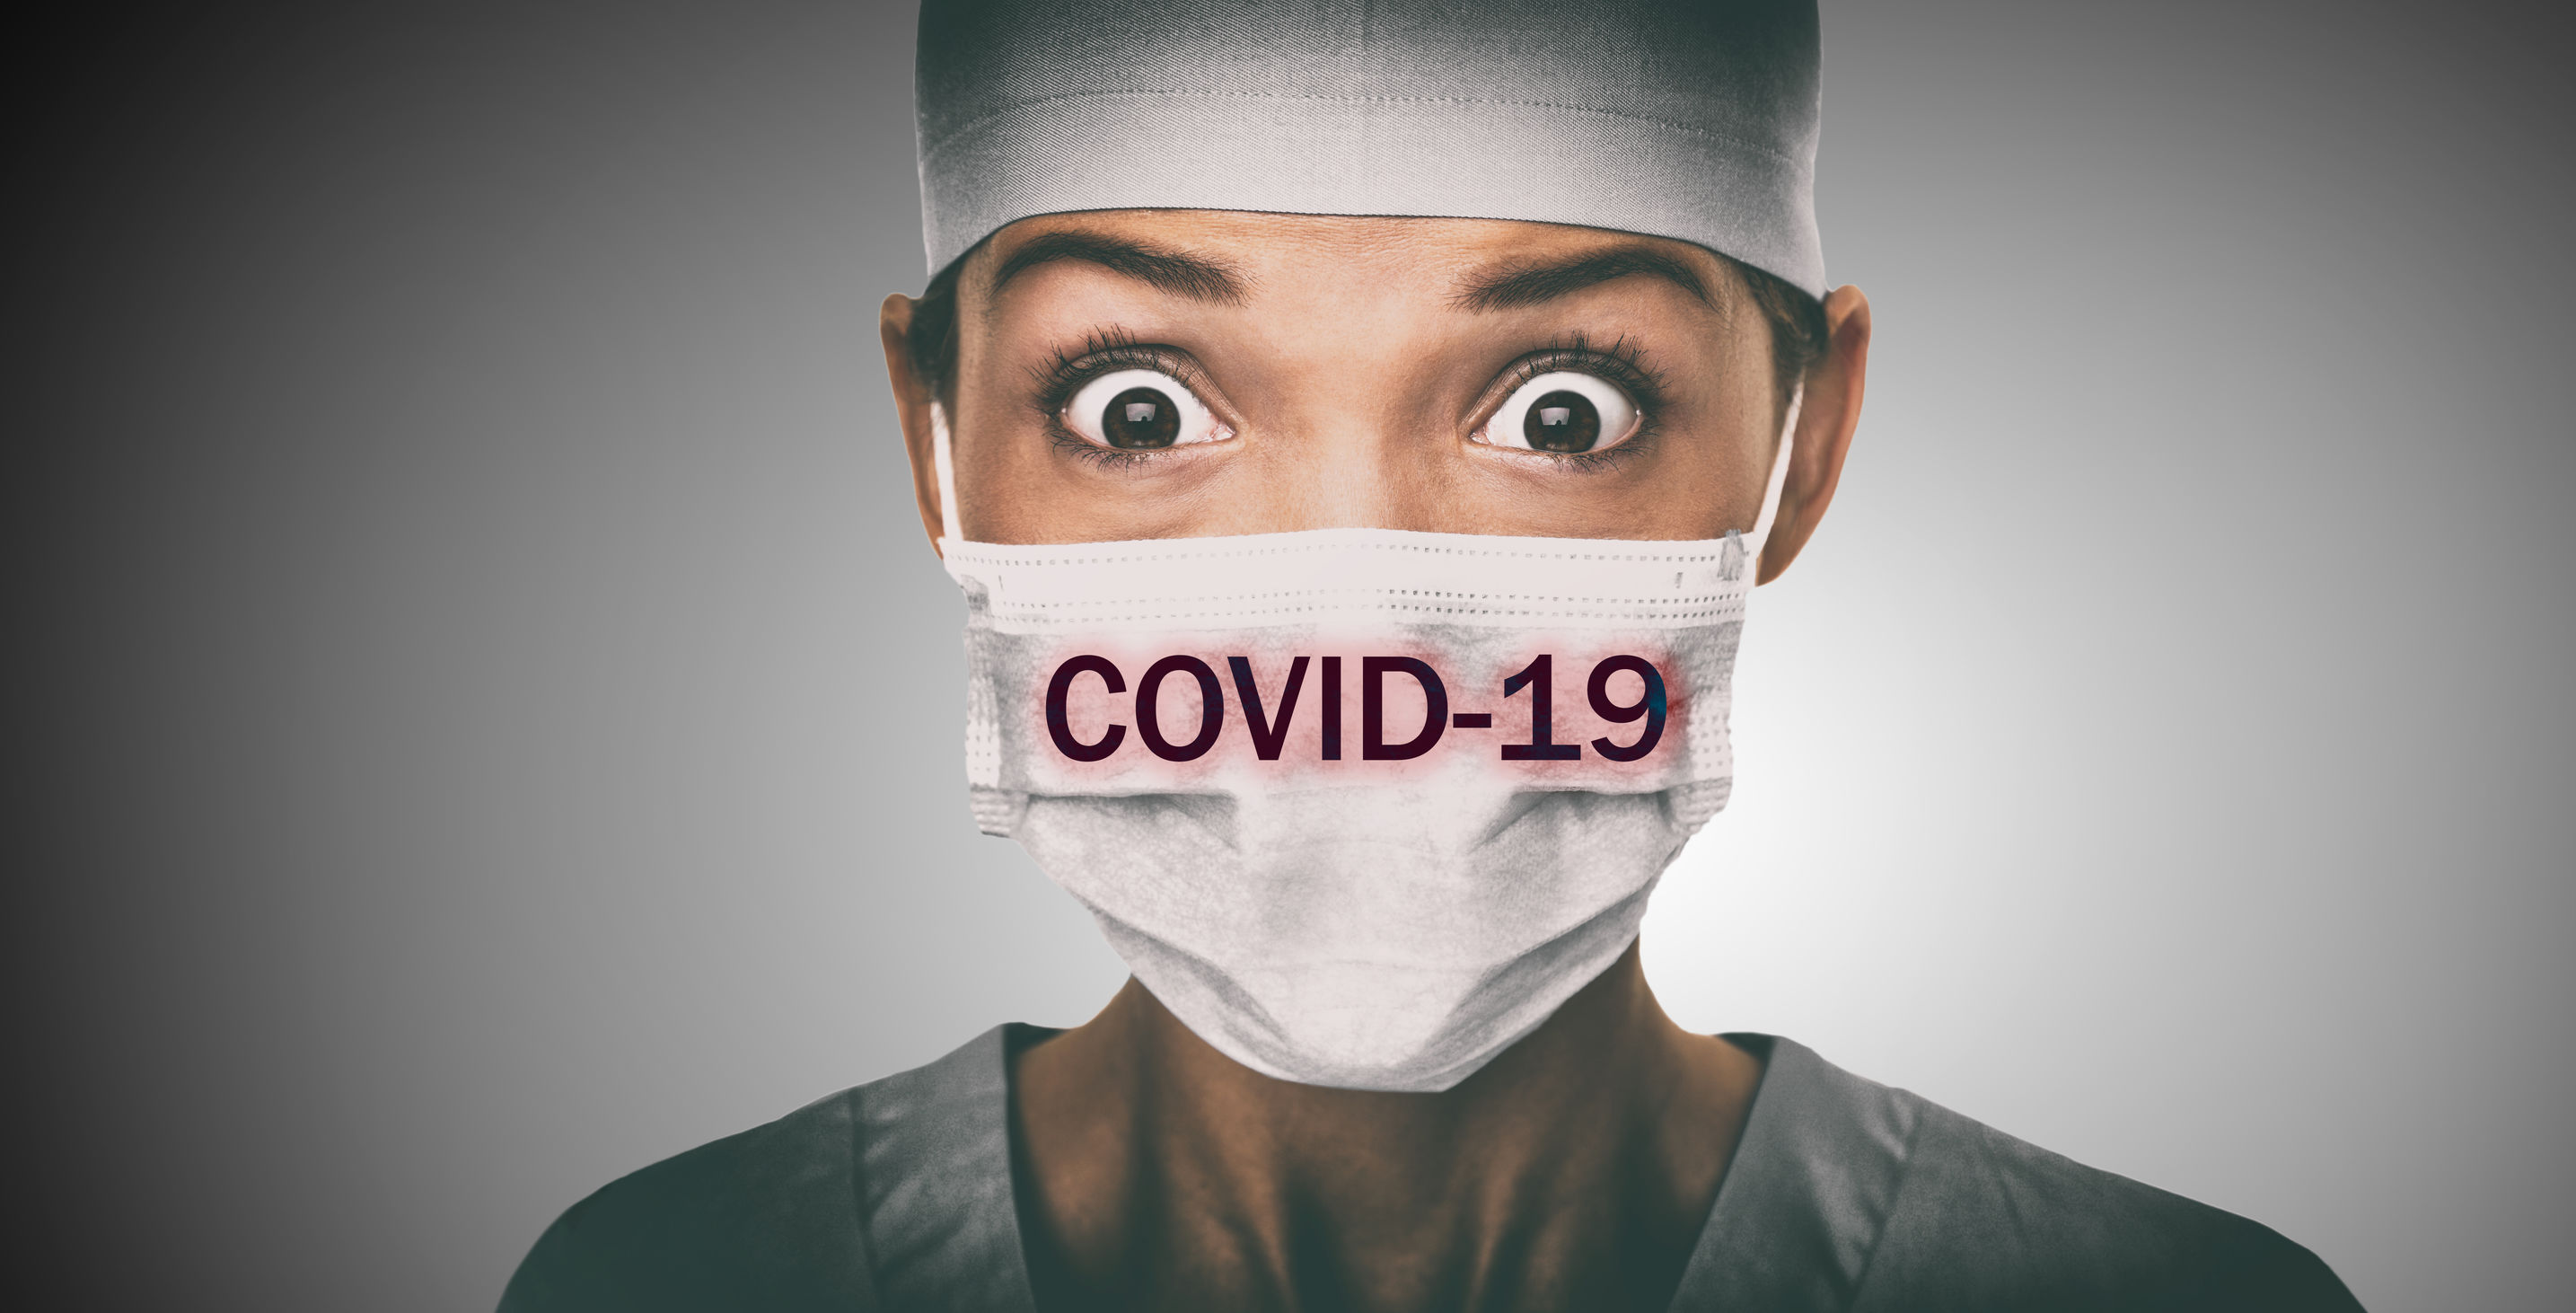 Think you Might Have COVID-19? Here are the Symptoms